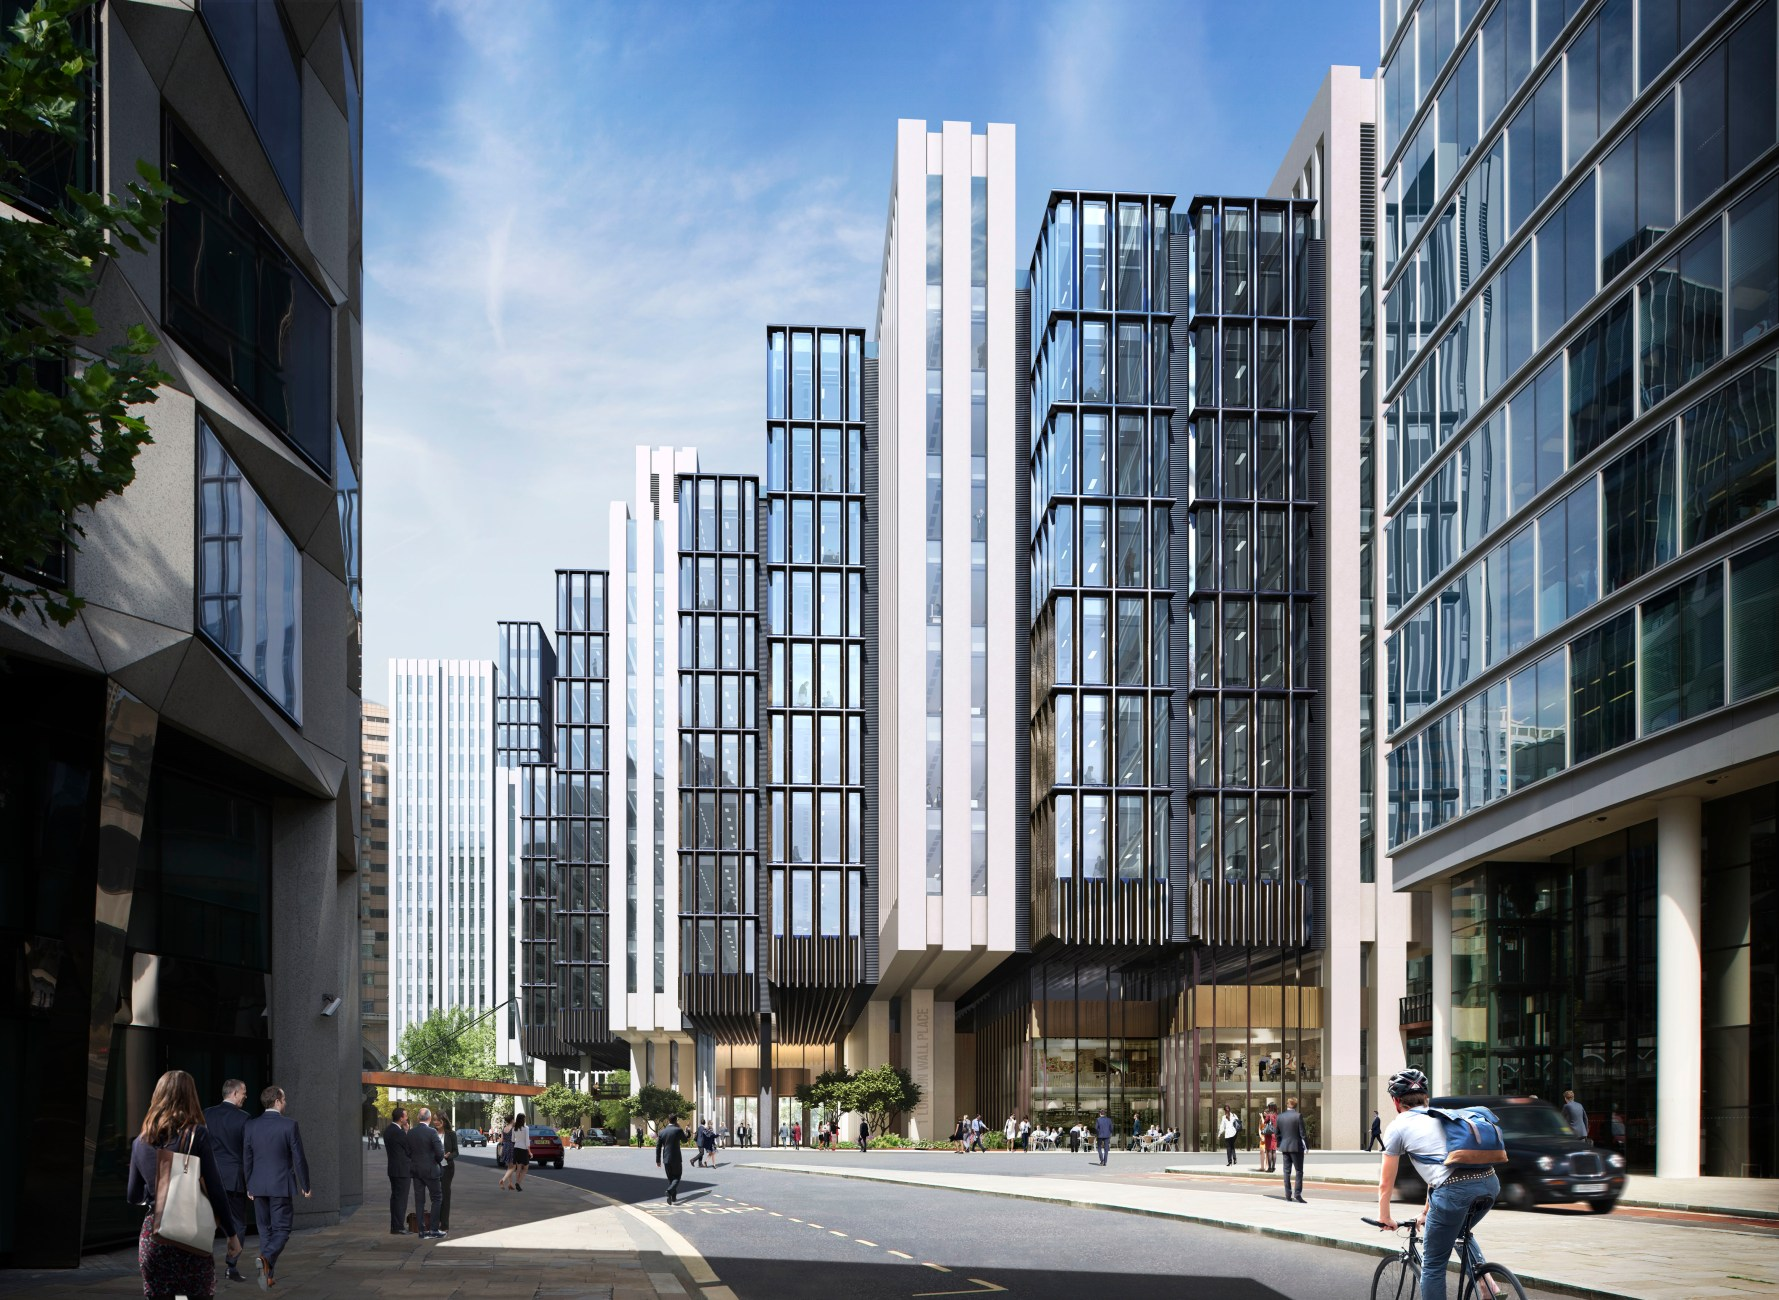 Argus Fire Wins Contract in Excess of £2M for London Wall Place